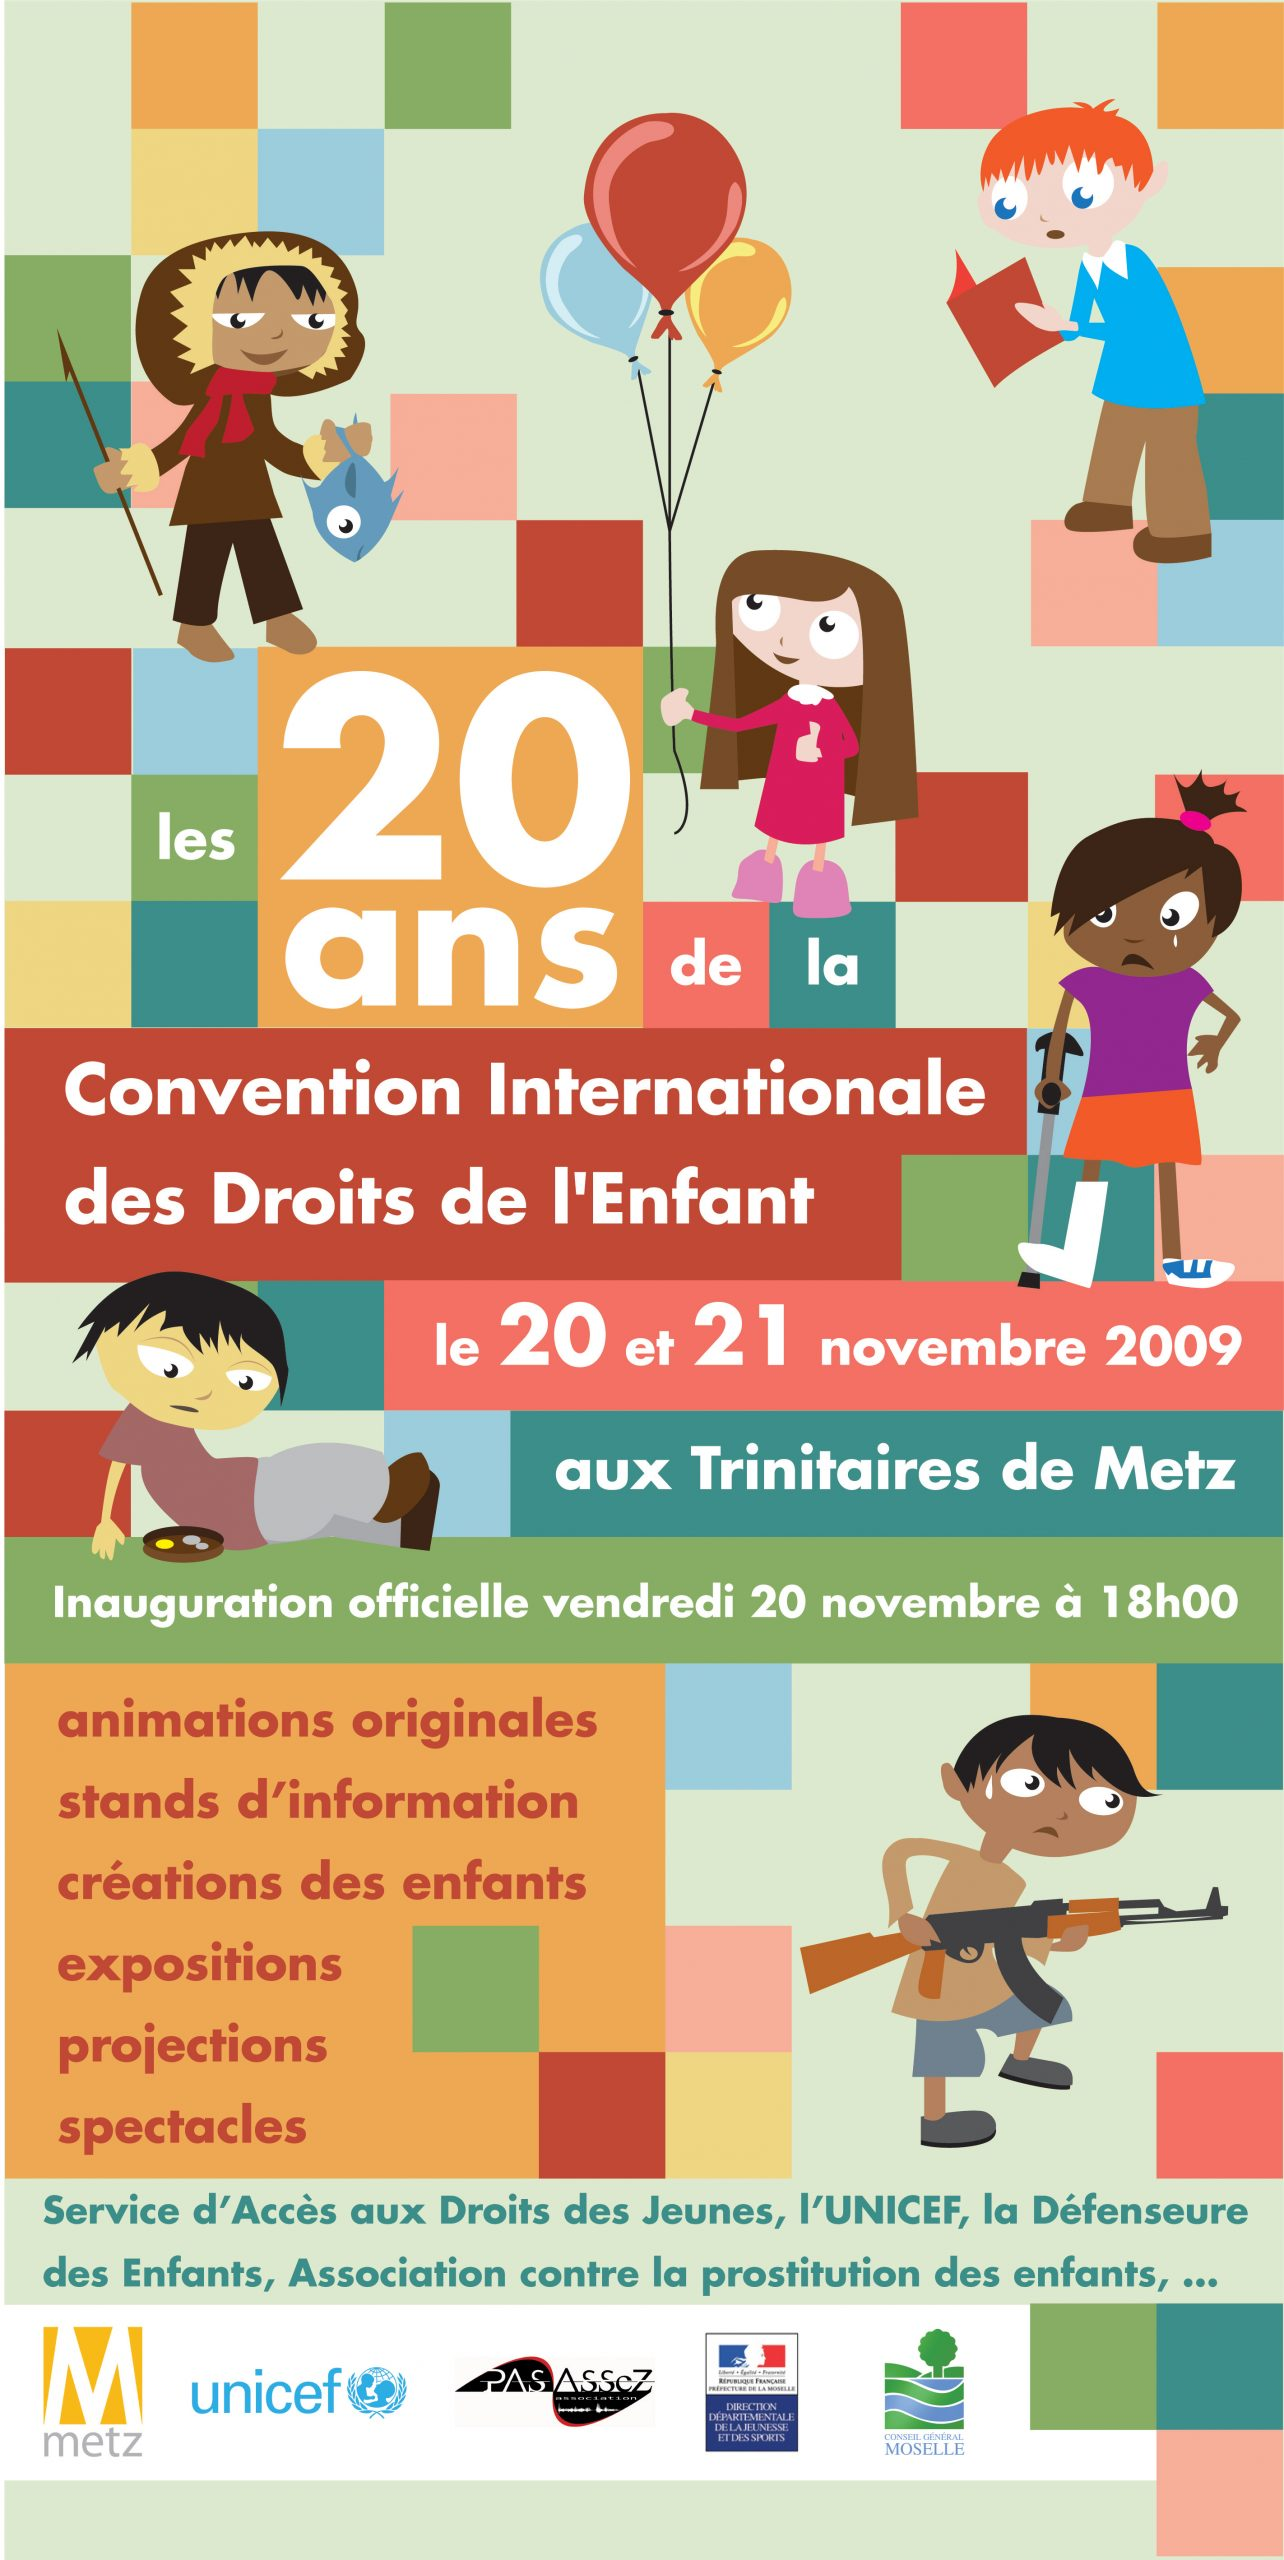 Affiche Convention Internationale des Droits de l'Enfant